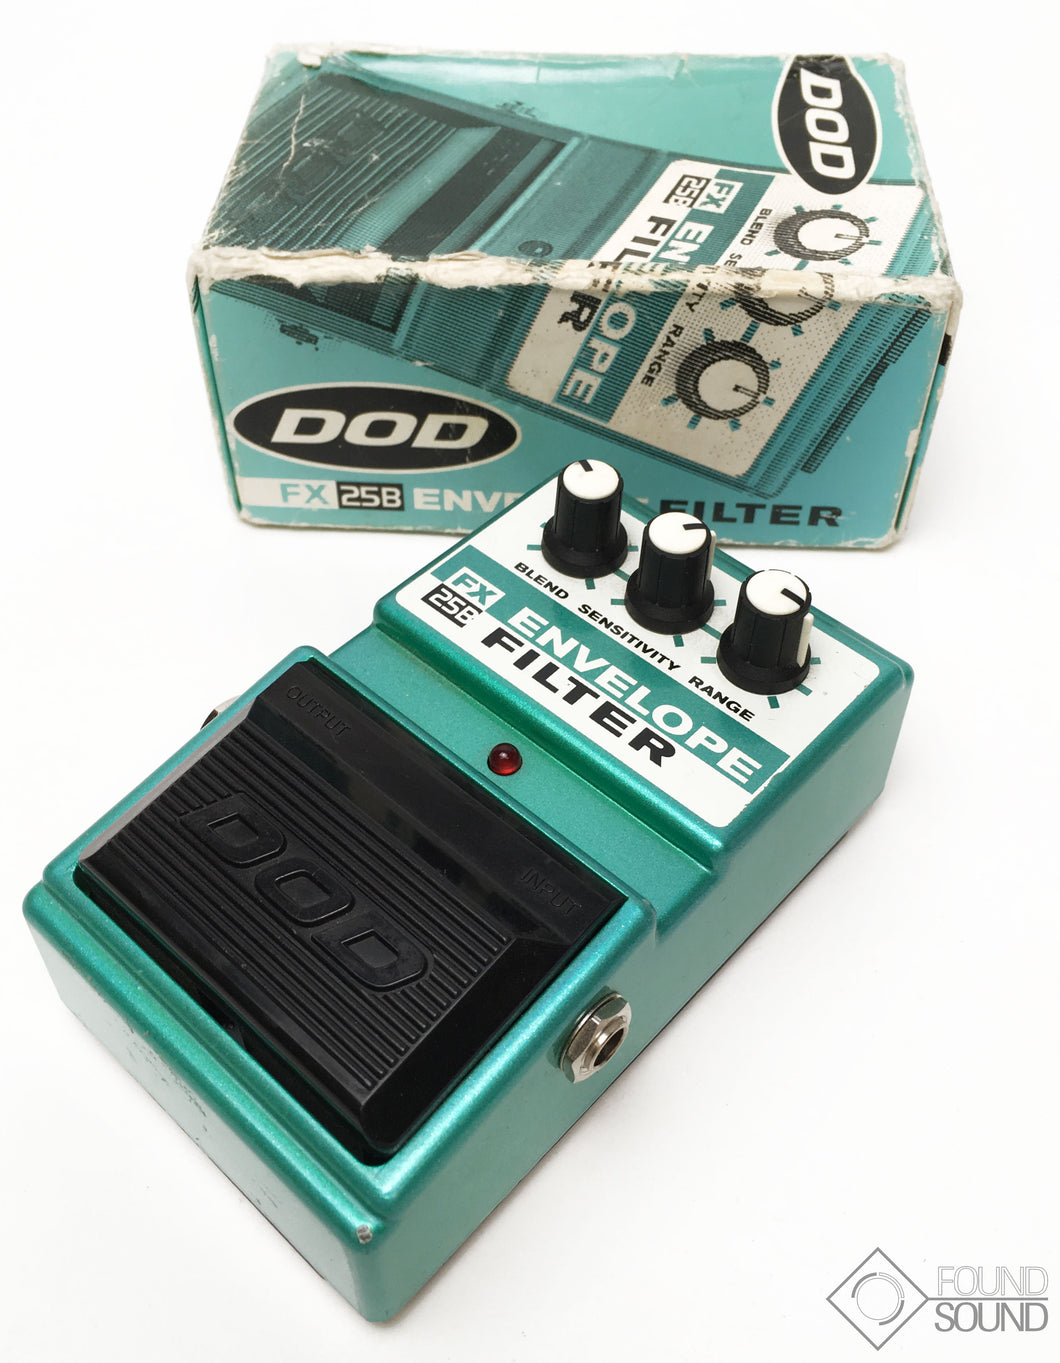 DOD FX 25B Envelope Filter